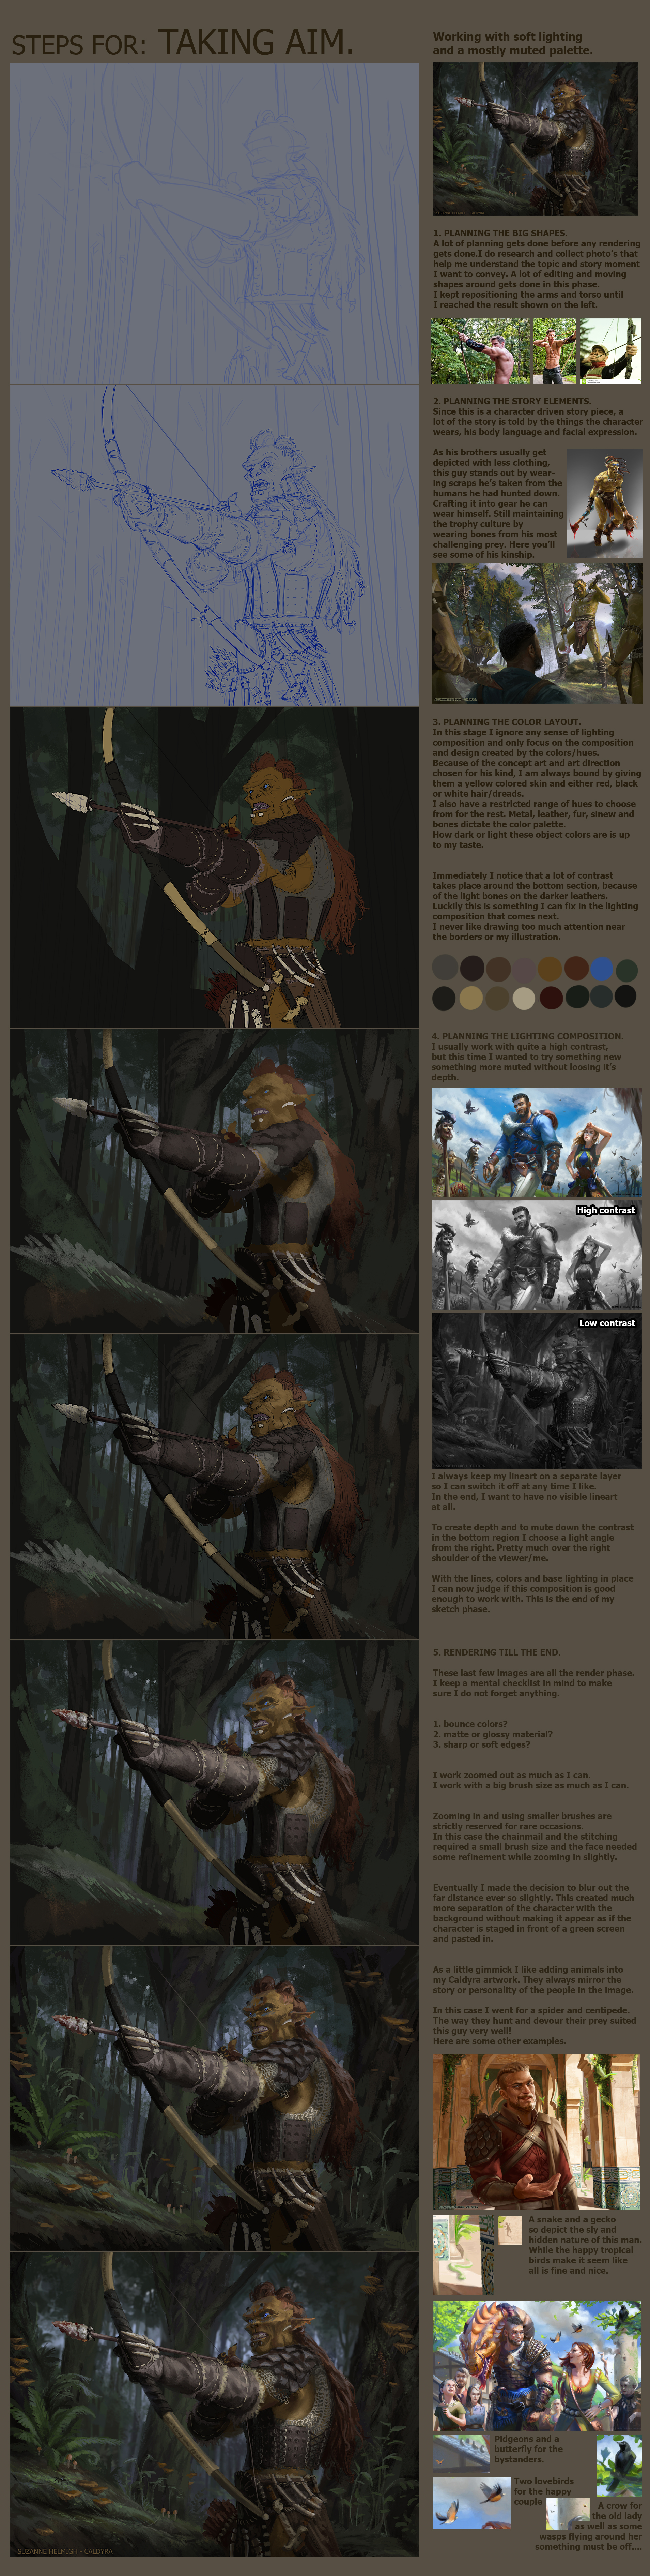 Taking aim tutorial steps. by Suzanne-Helmigh